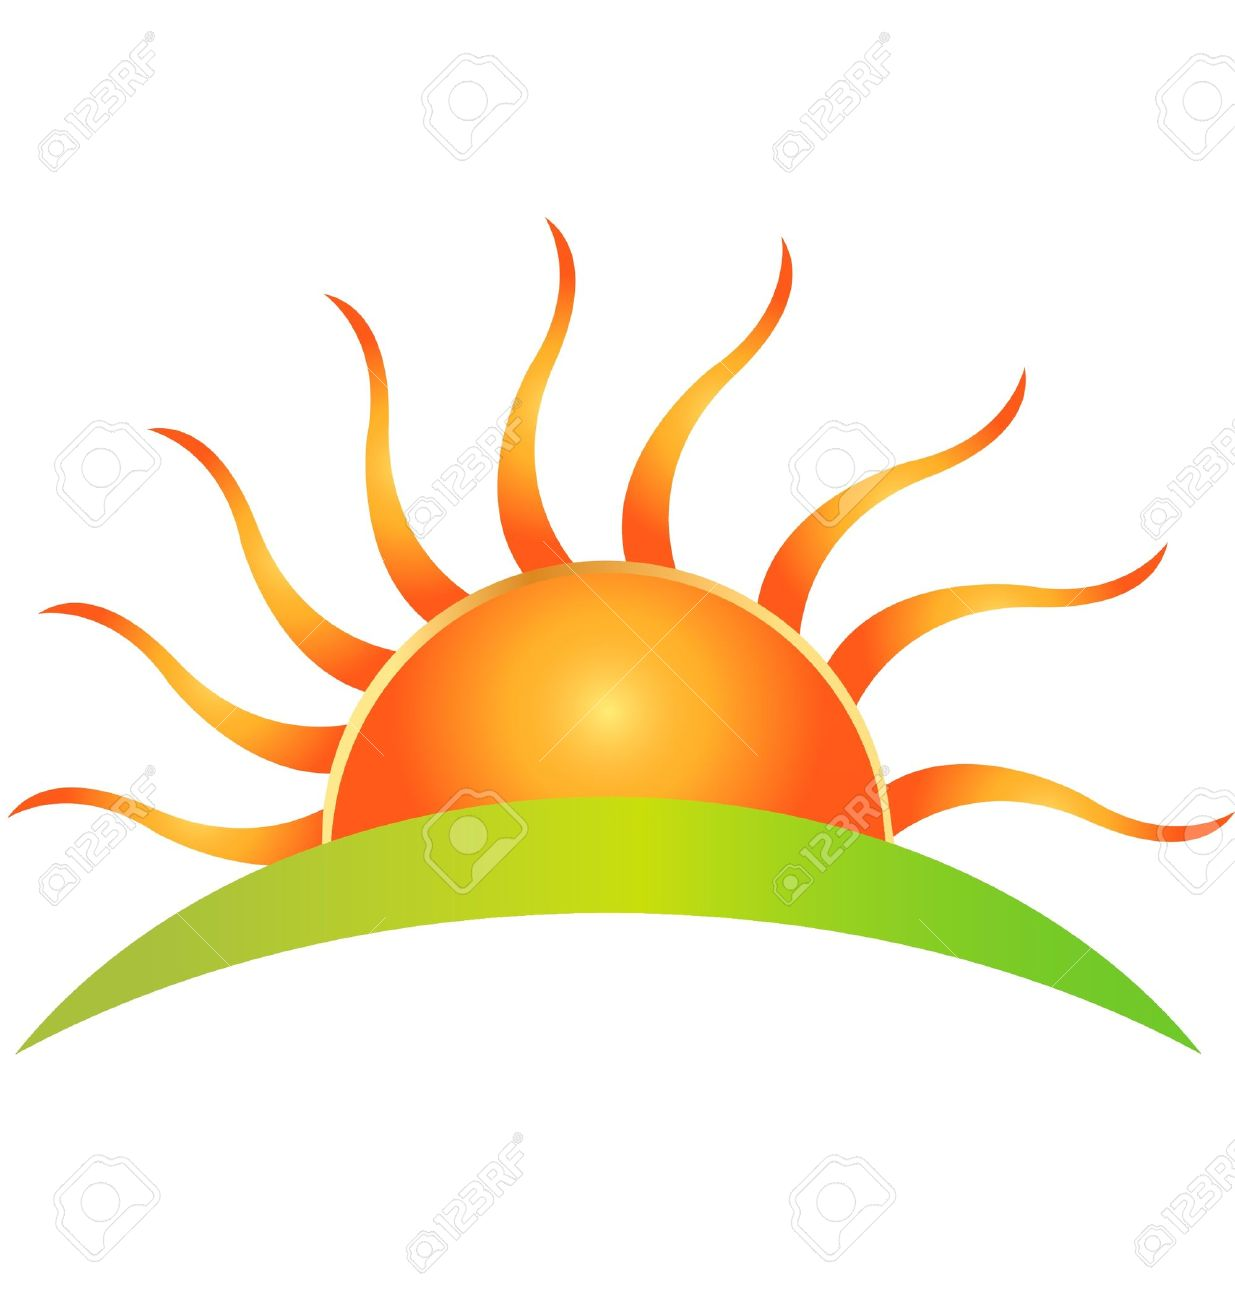 sun logo royalty free cliparts vectors and stock illustration rh 123rf com sun logos images sun logistics